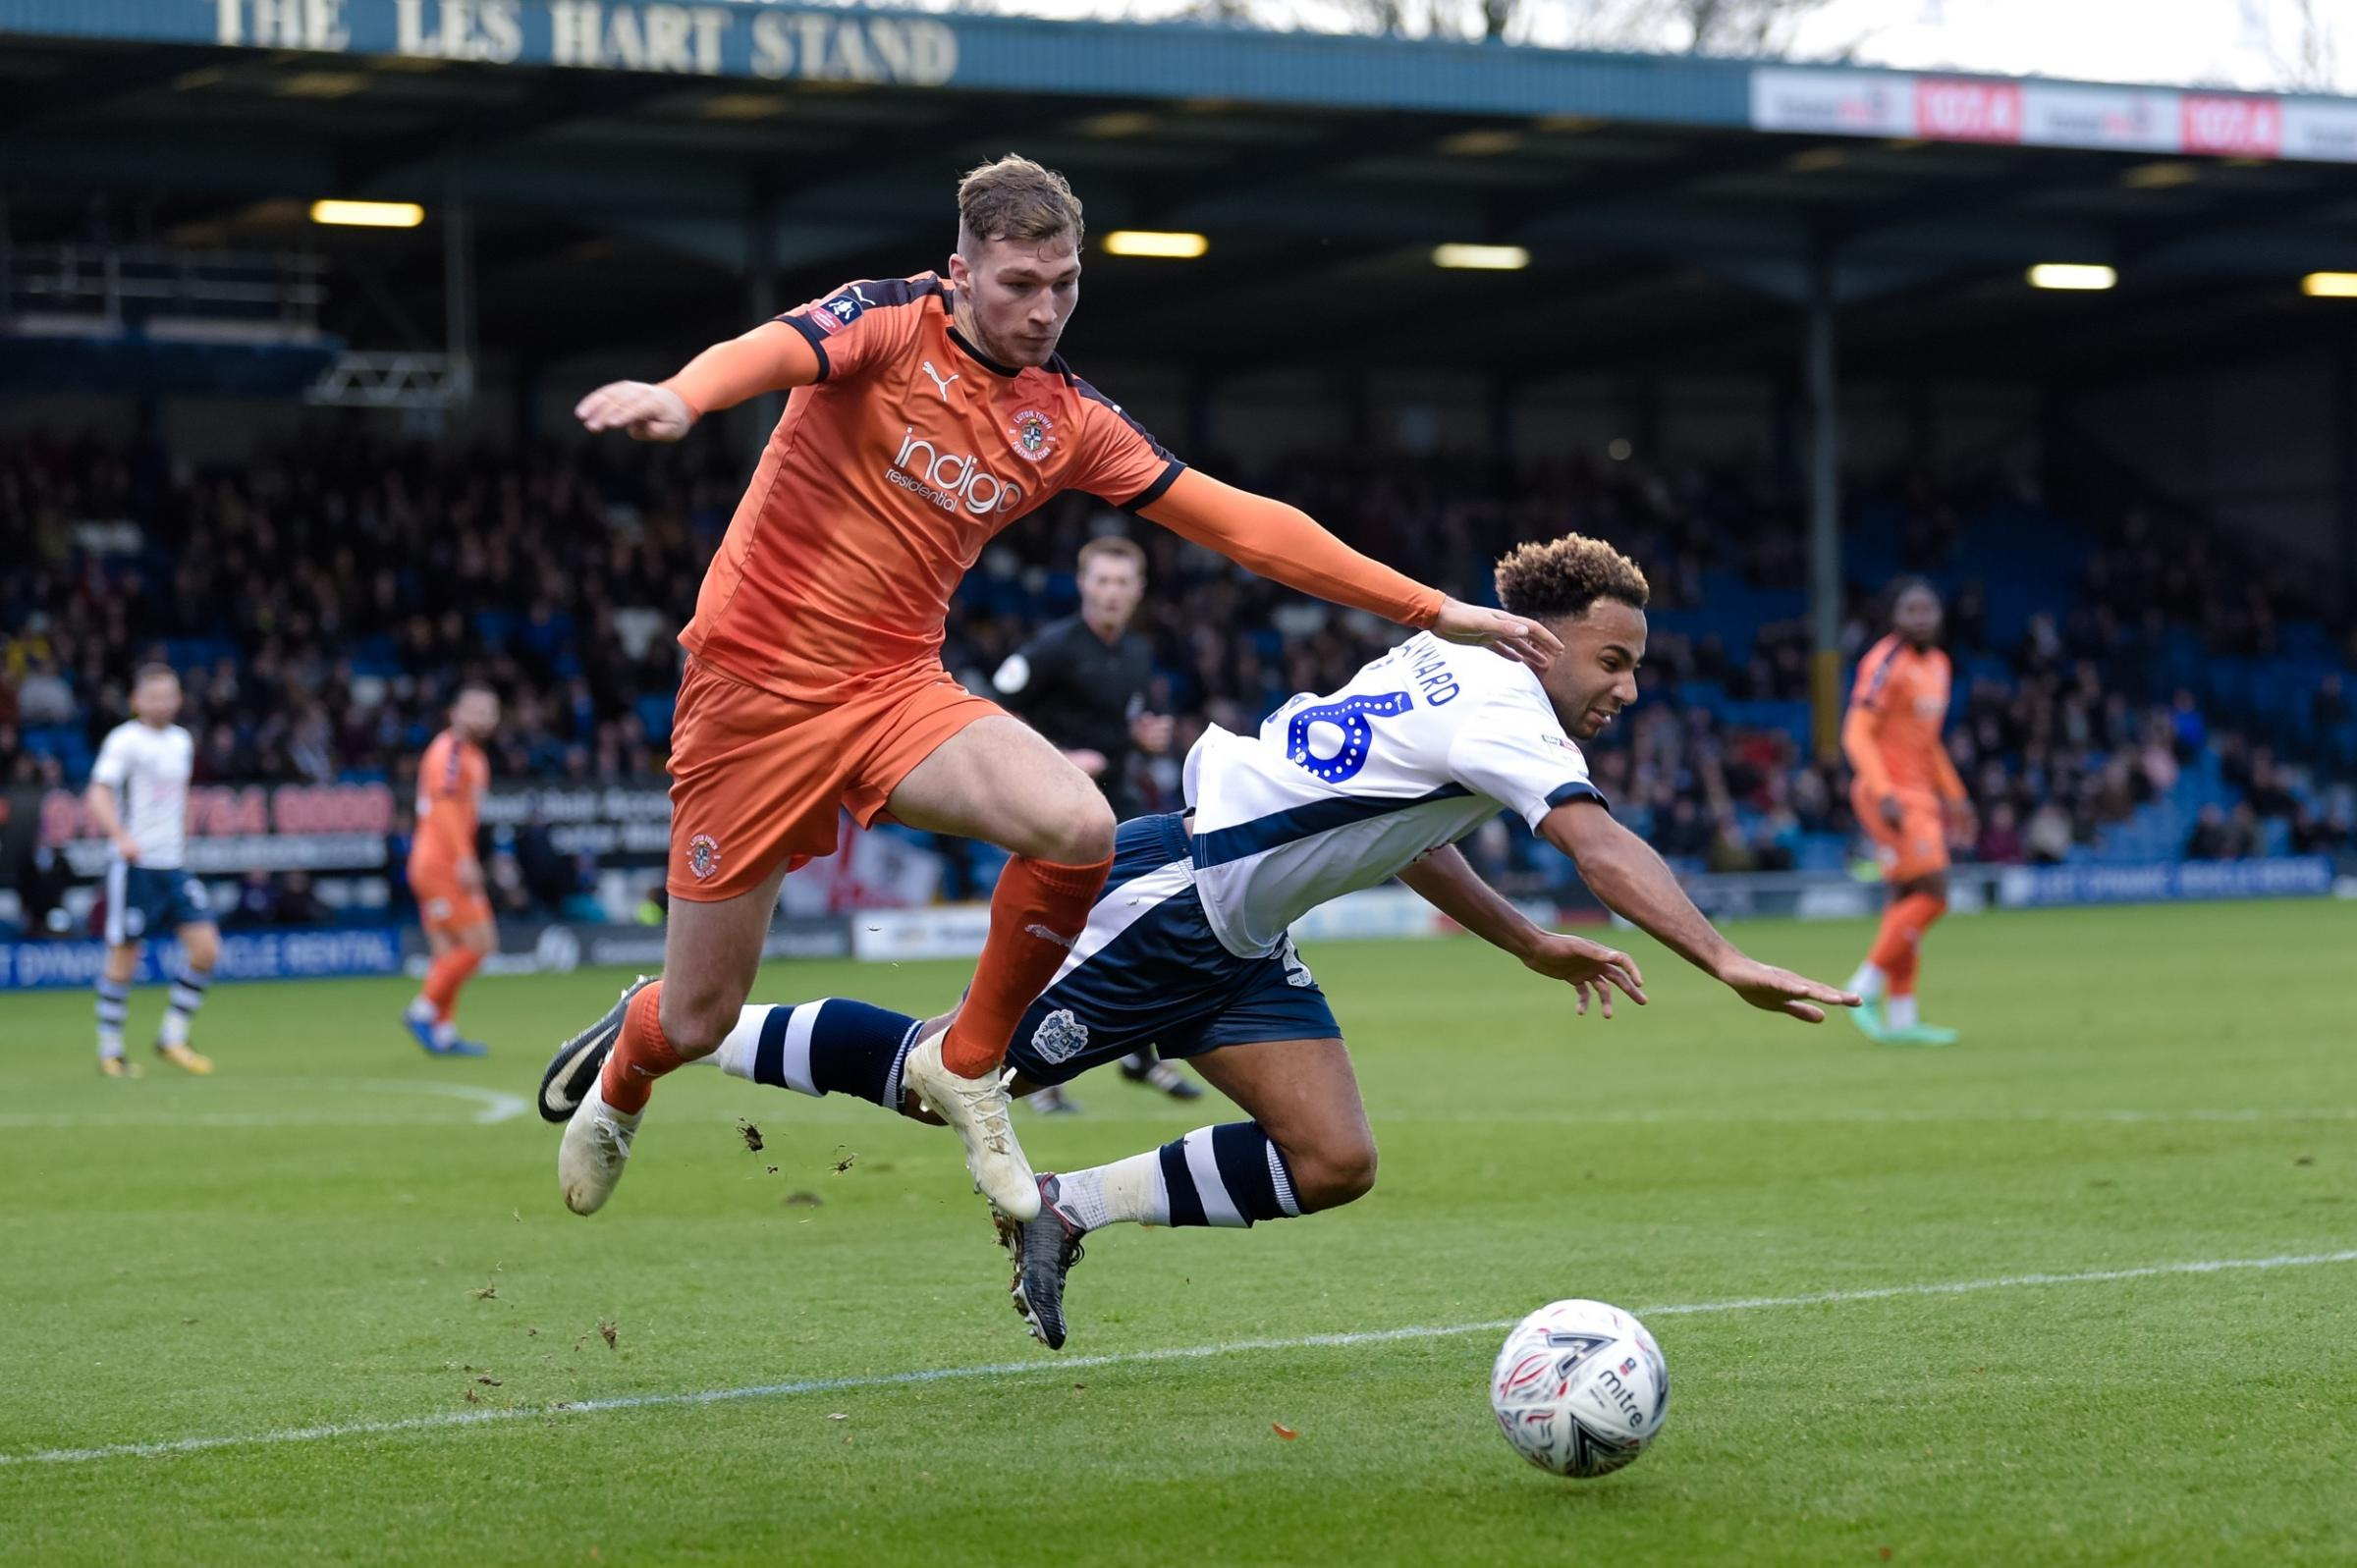 BURY 0 LUTON TOWN 1: Match report from Sunday's FA Cup second-round defeat